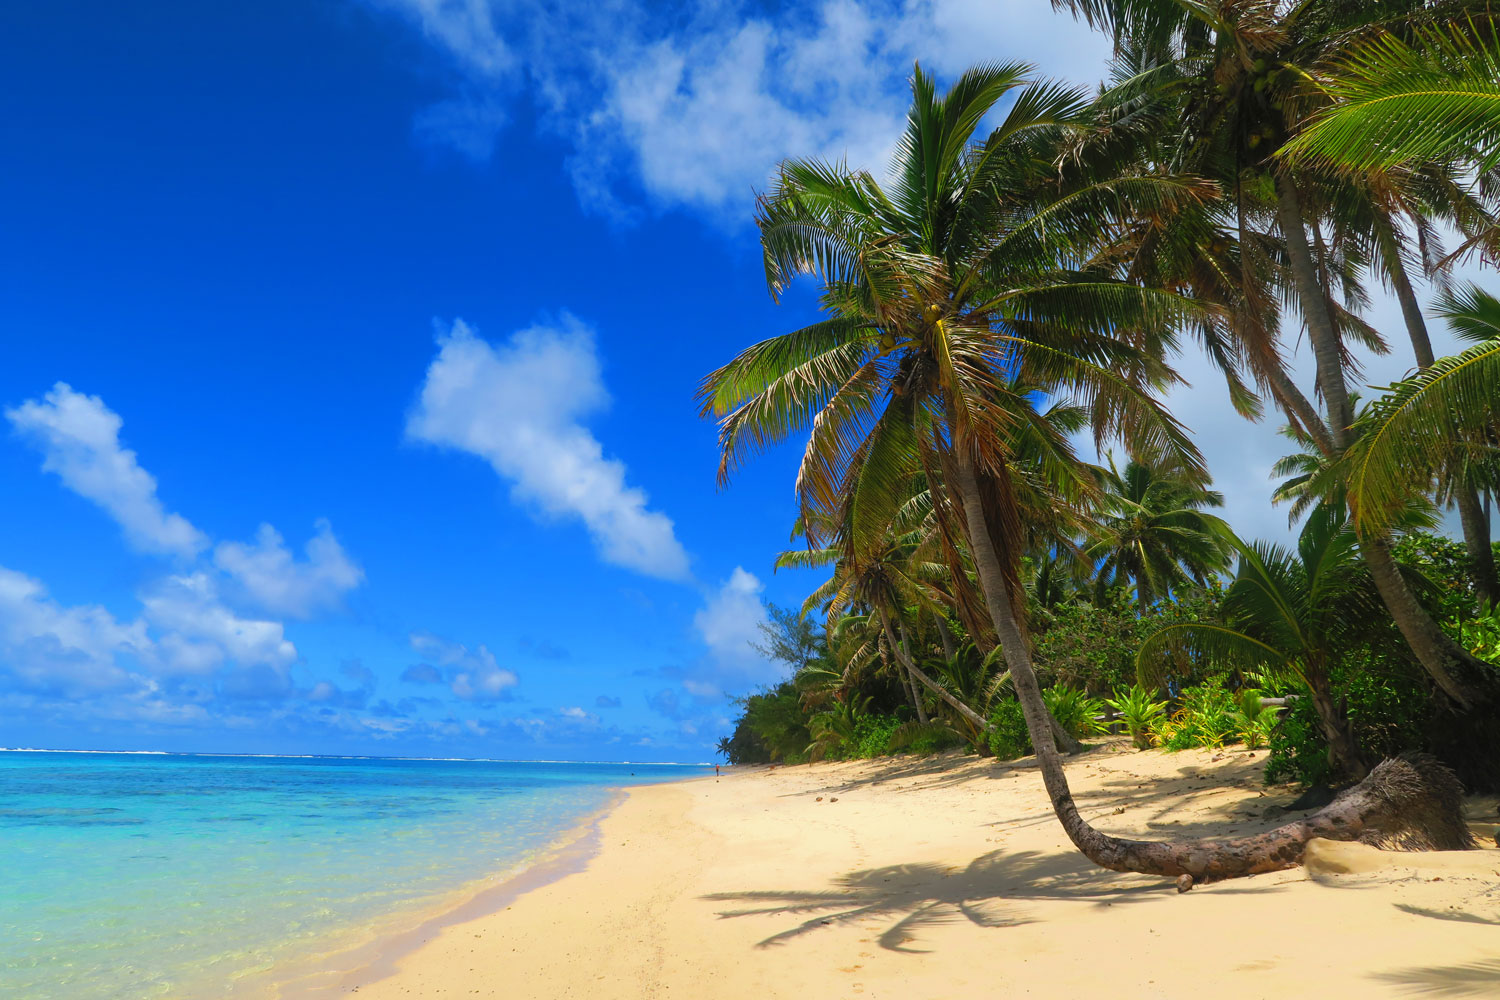 The Pacific S Best Islands And Beaches: Capping Off A Journey 'Down Under' In The Cook Islands